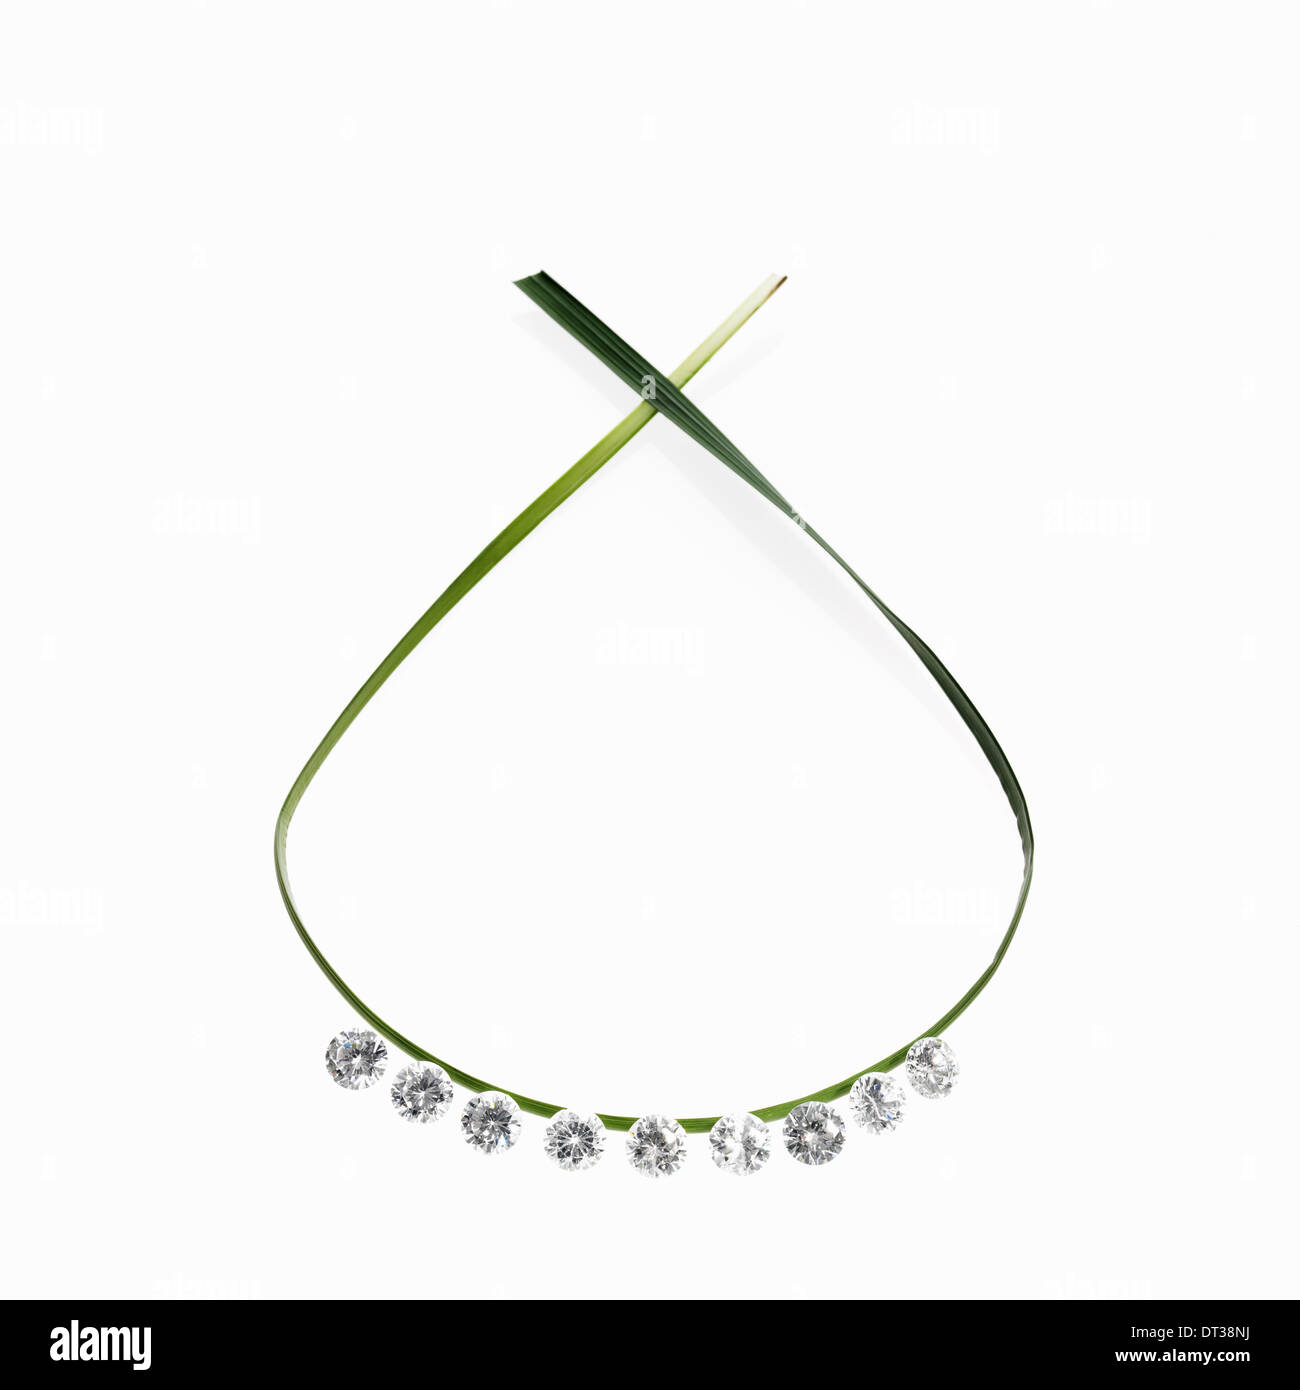 A thin green strap leaf in a loop with small sparkling gem cut clear glass beads. A necklace with a natural feel. - Stock Image